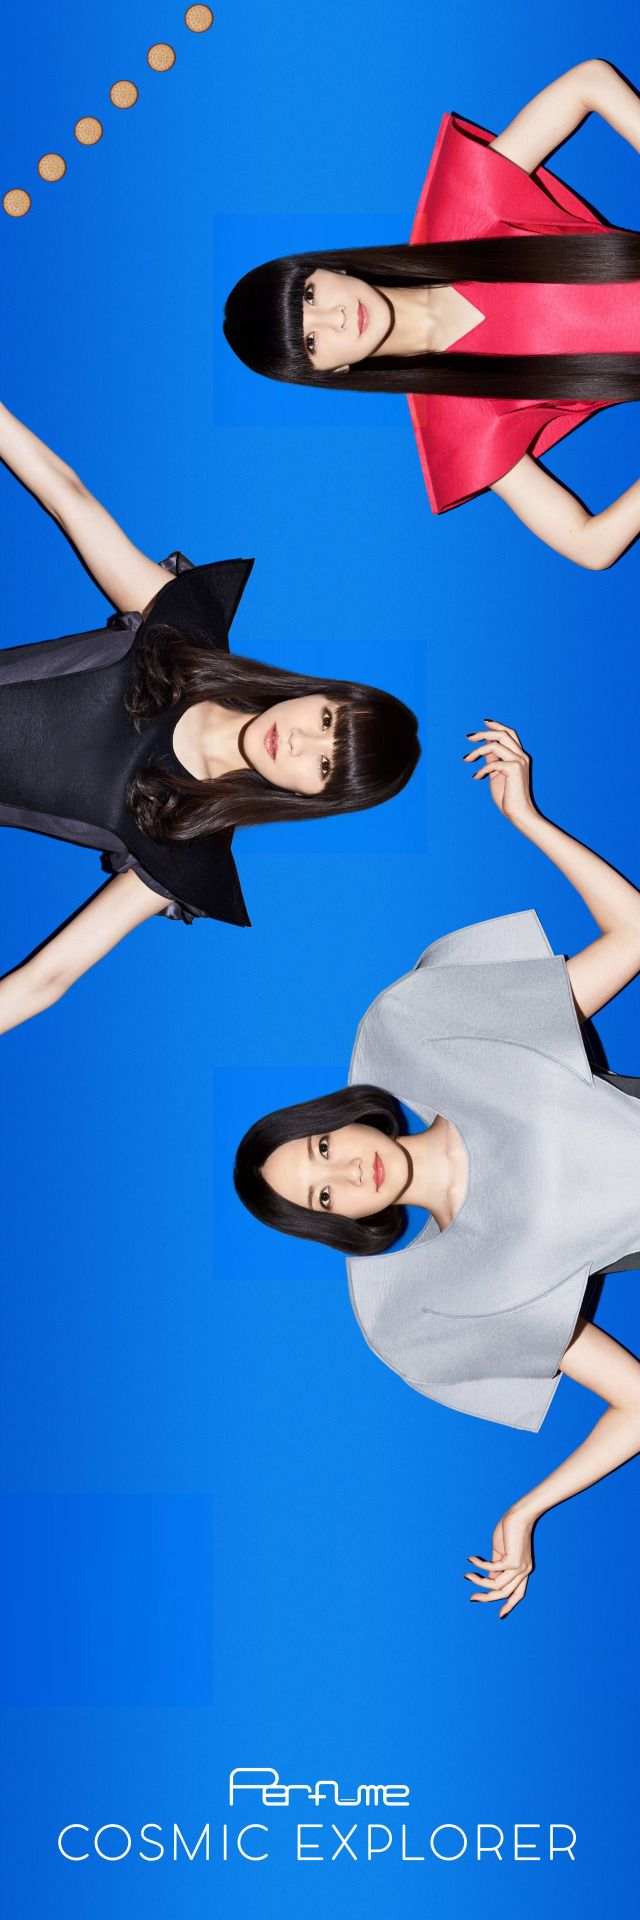 "mikietsang: "" From Perfume Official Instagram Edit by me, the biggest size that I can get. Tumblr change the size, you can download full size here:https://mega.nz/#F!9MYATADT!8i0ERU6wu9uBneTm7IUn5g """